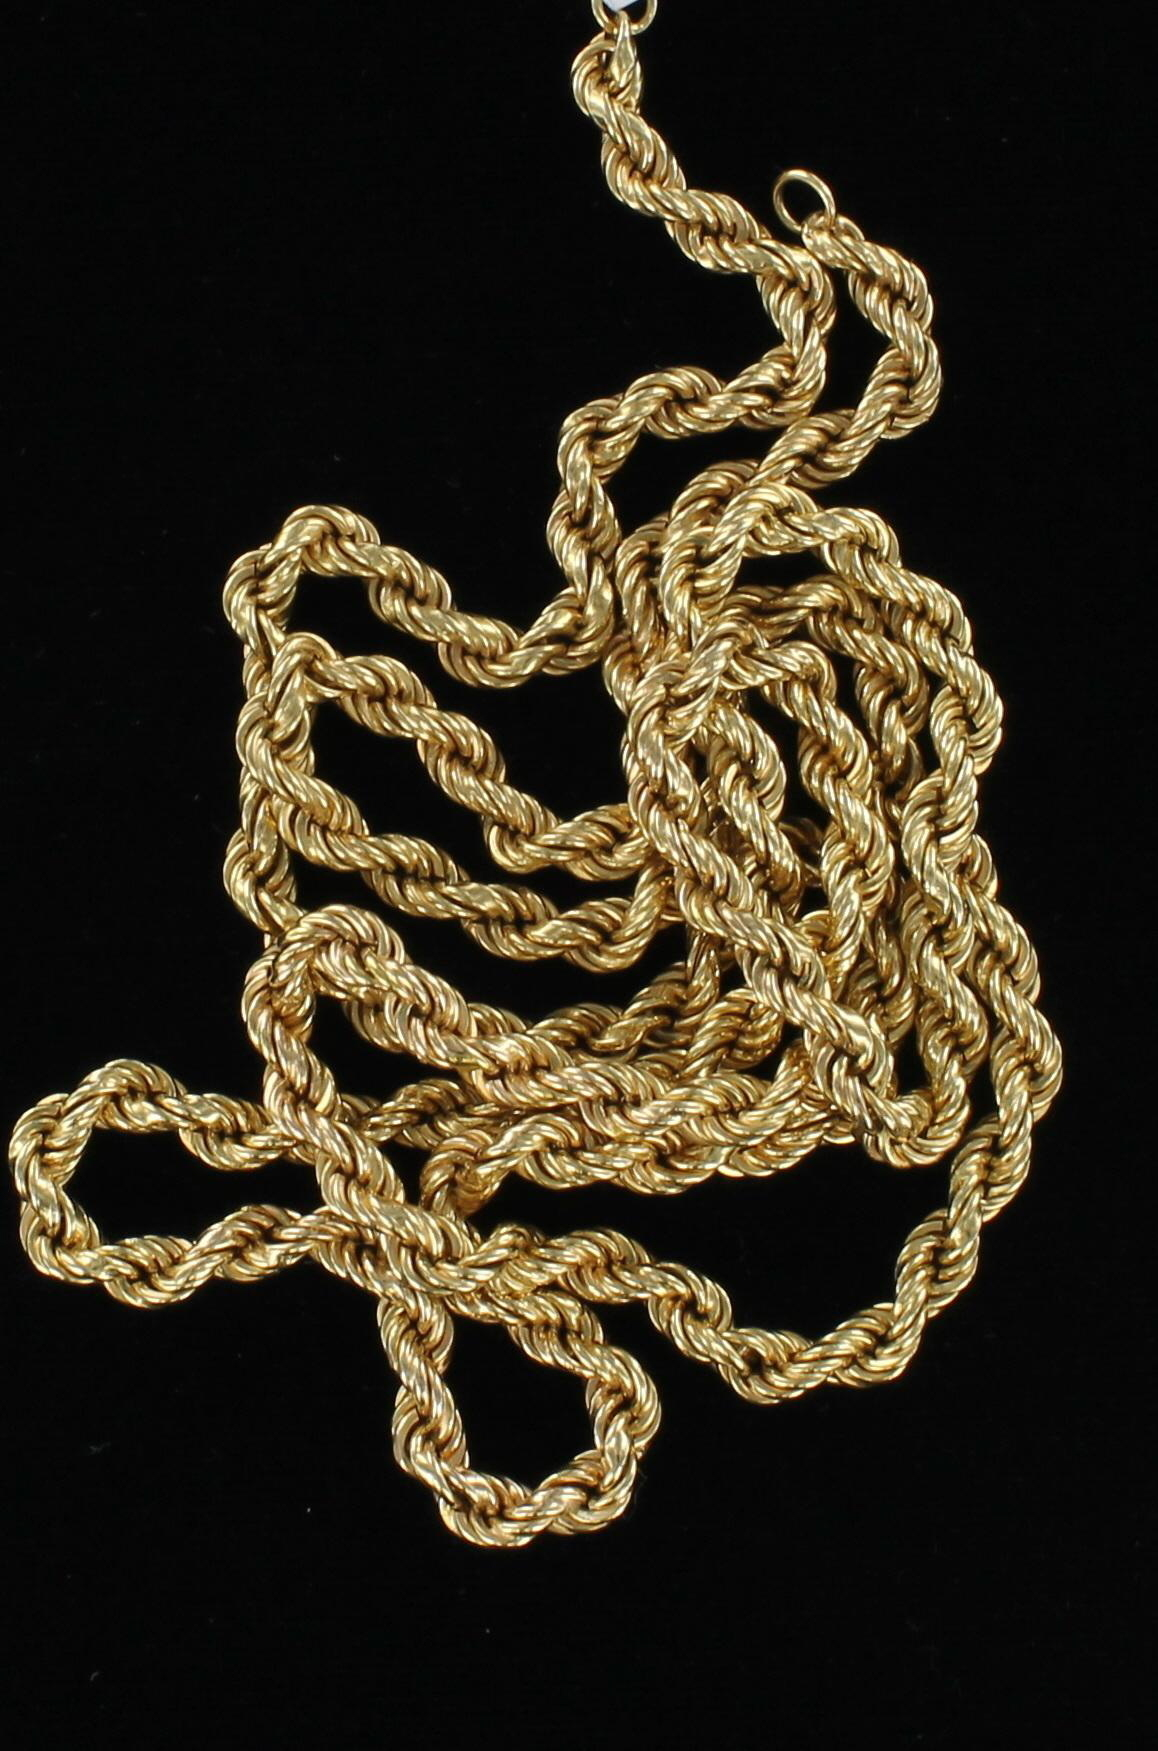 18KT CHAIN, 30 INCHES